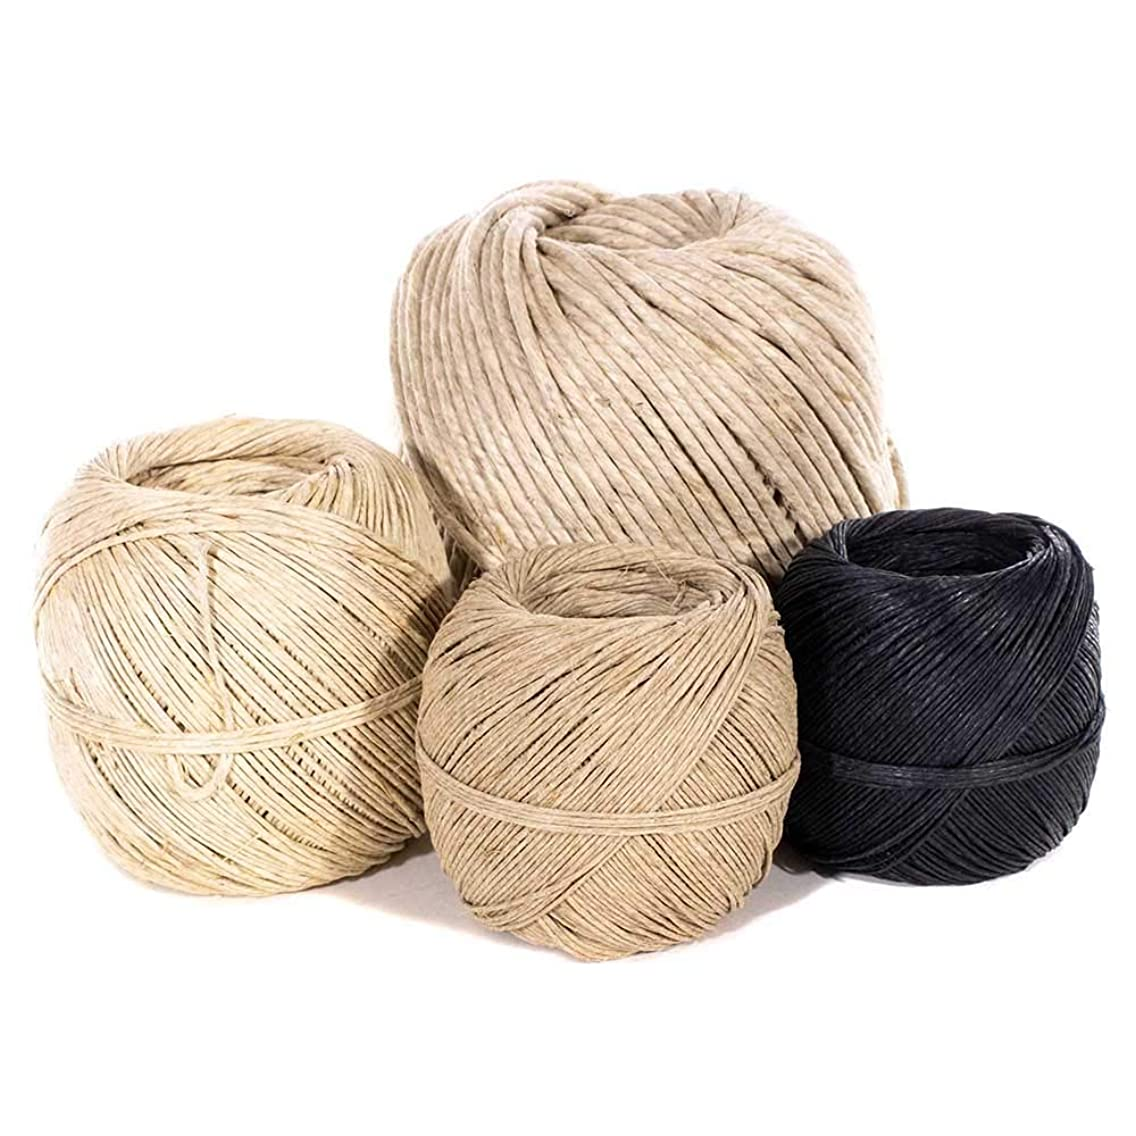 Hemp Cord in 1mm, 2mm, and 3mm Diameters – Choose from Black or Natural in Color – Wrapped in a Ball – Great for Crafting, Binding, Packaging, and Decoration